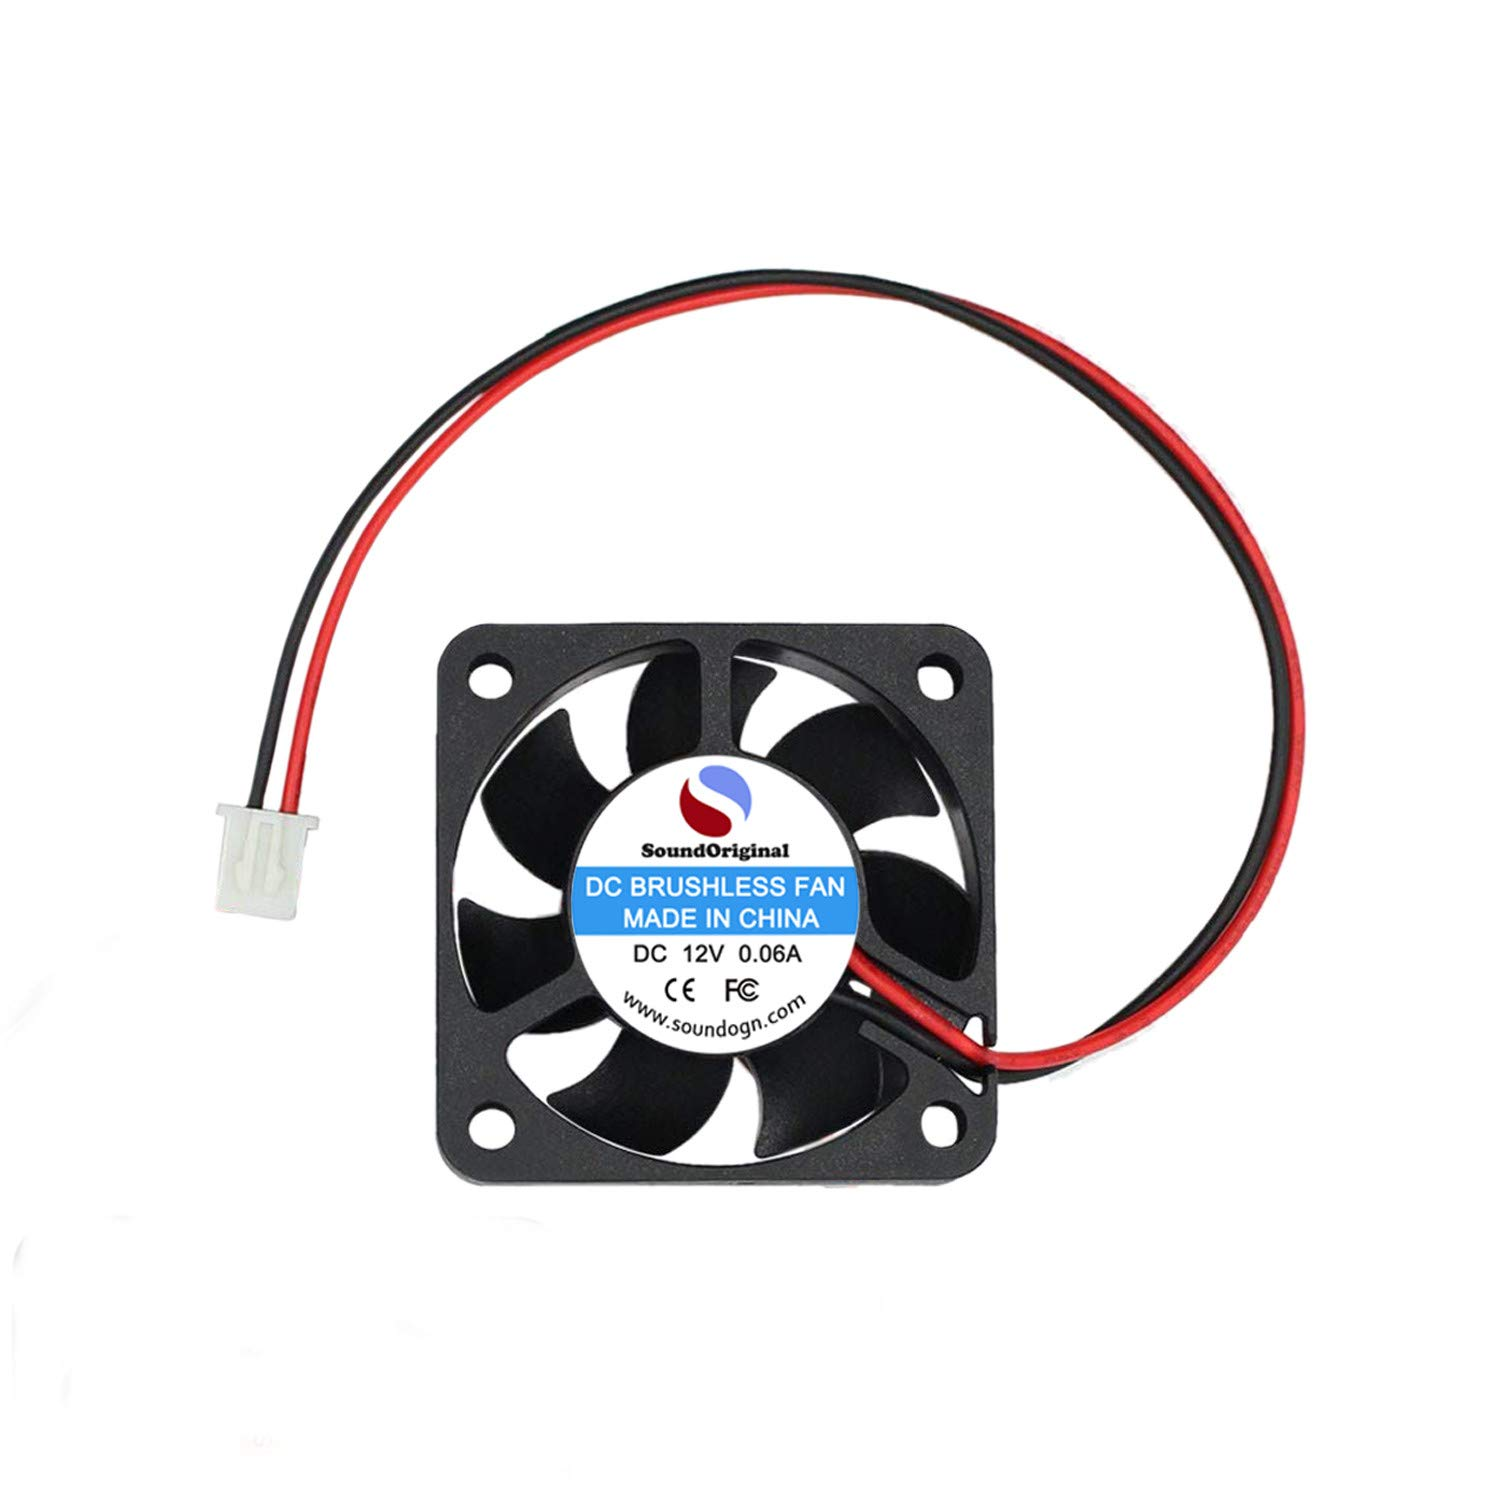 SoundOriginal 4010 Brushless DC Cooling Fan 12V 0 06A 40mm x 40mm x10mm  Speed 6800 RPM Fans for 3D Printer Humidifier Aromatherapy and Other Small